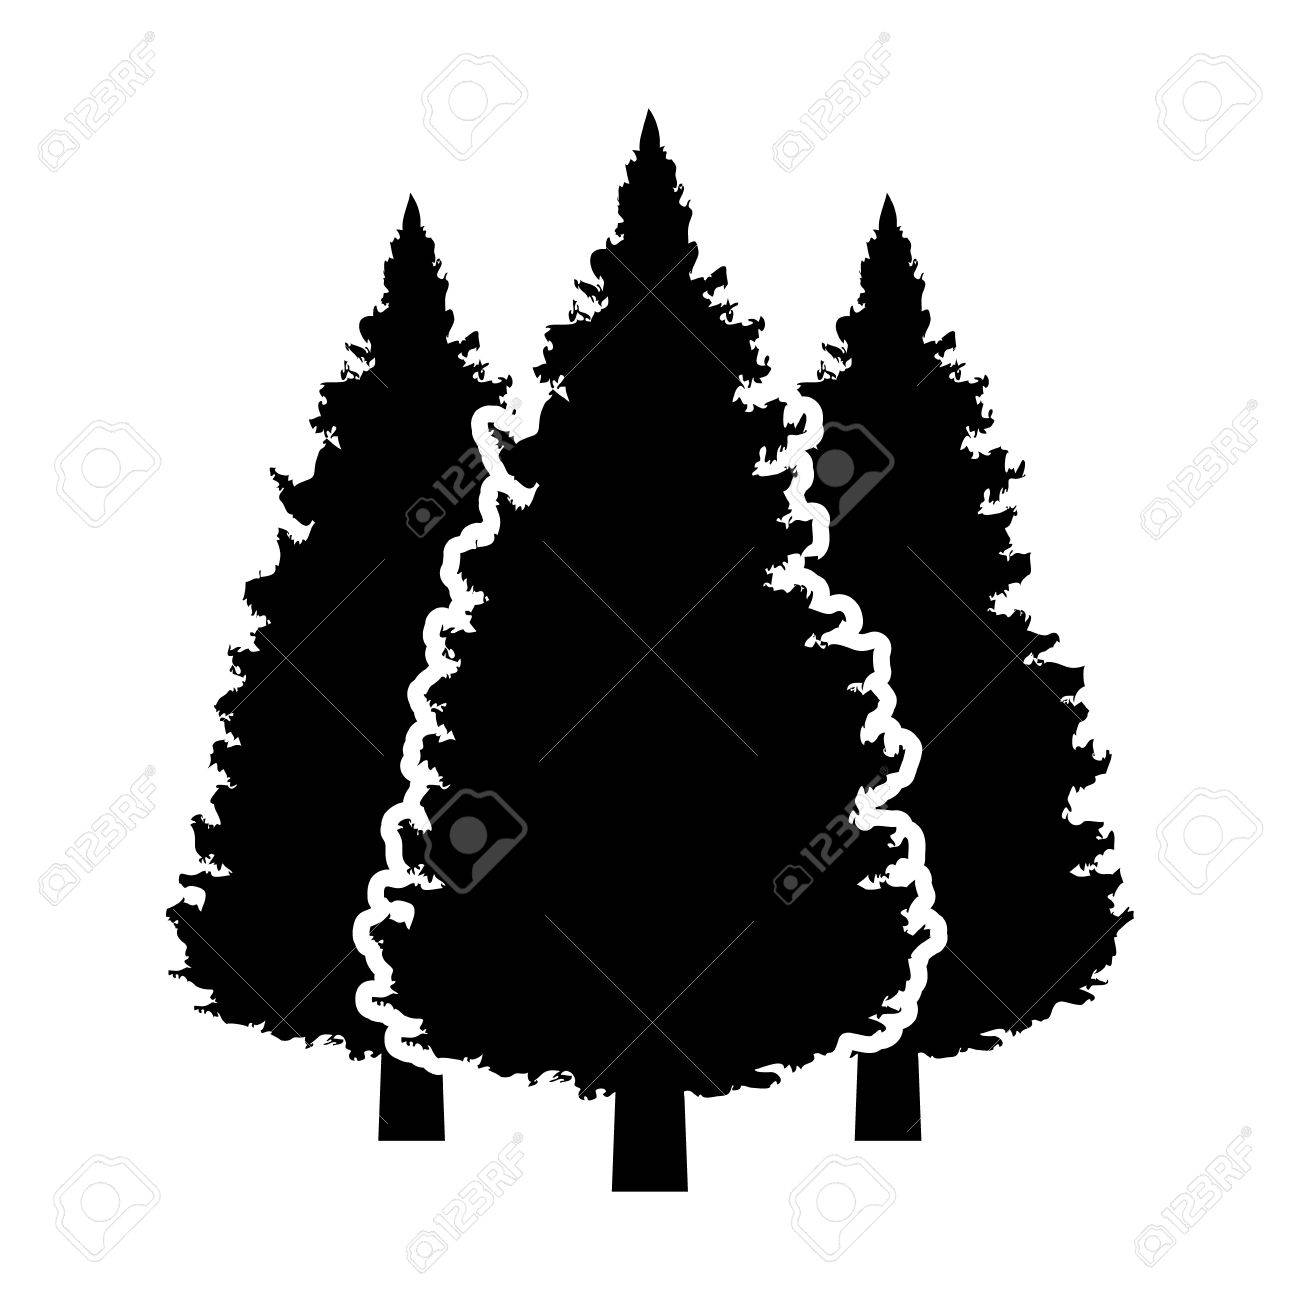 three conifer pine trees in a forest or park flat vector icon rh 123rf com pine tree vector free download pine tree vector free download